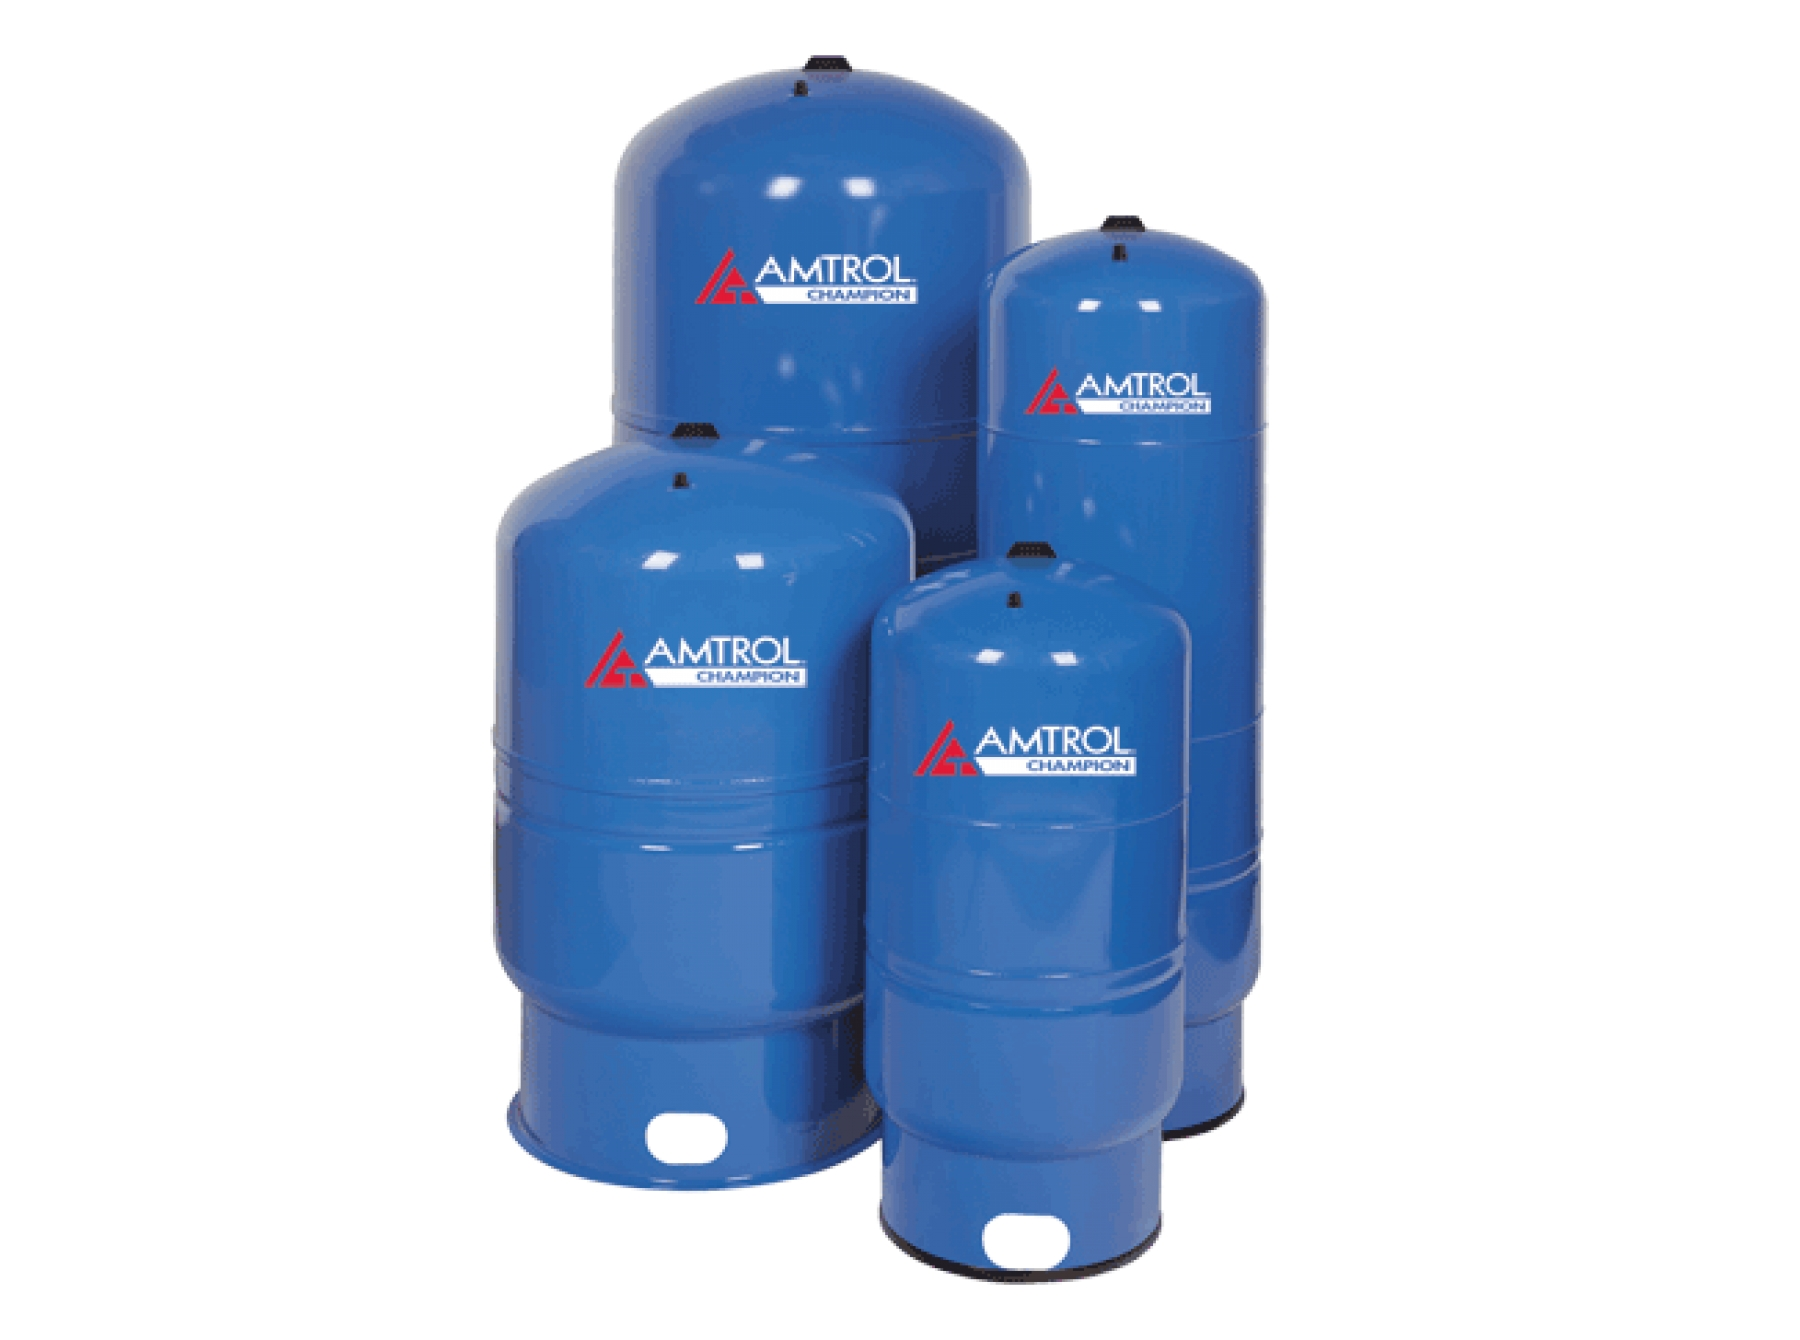 Amtrol Boilermate Available In Canada Ward Heating